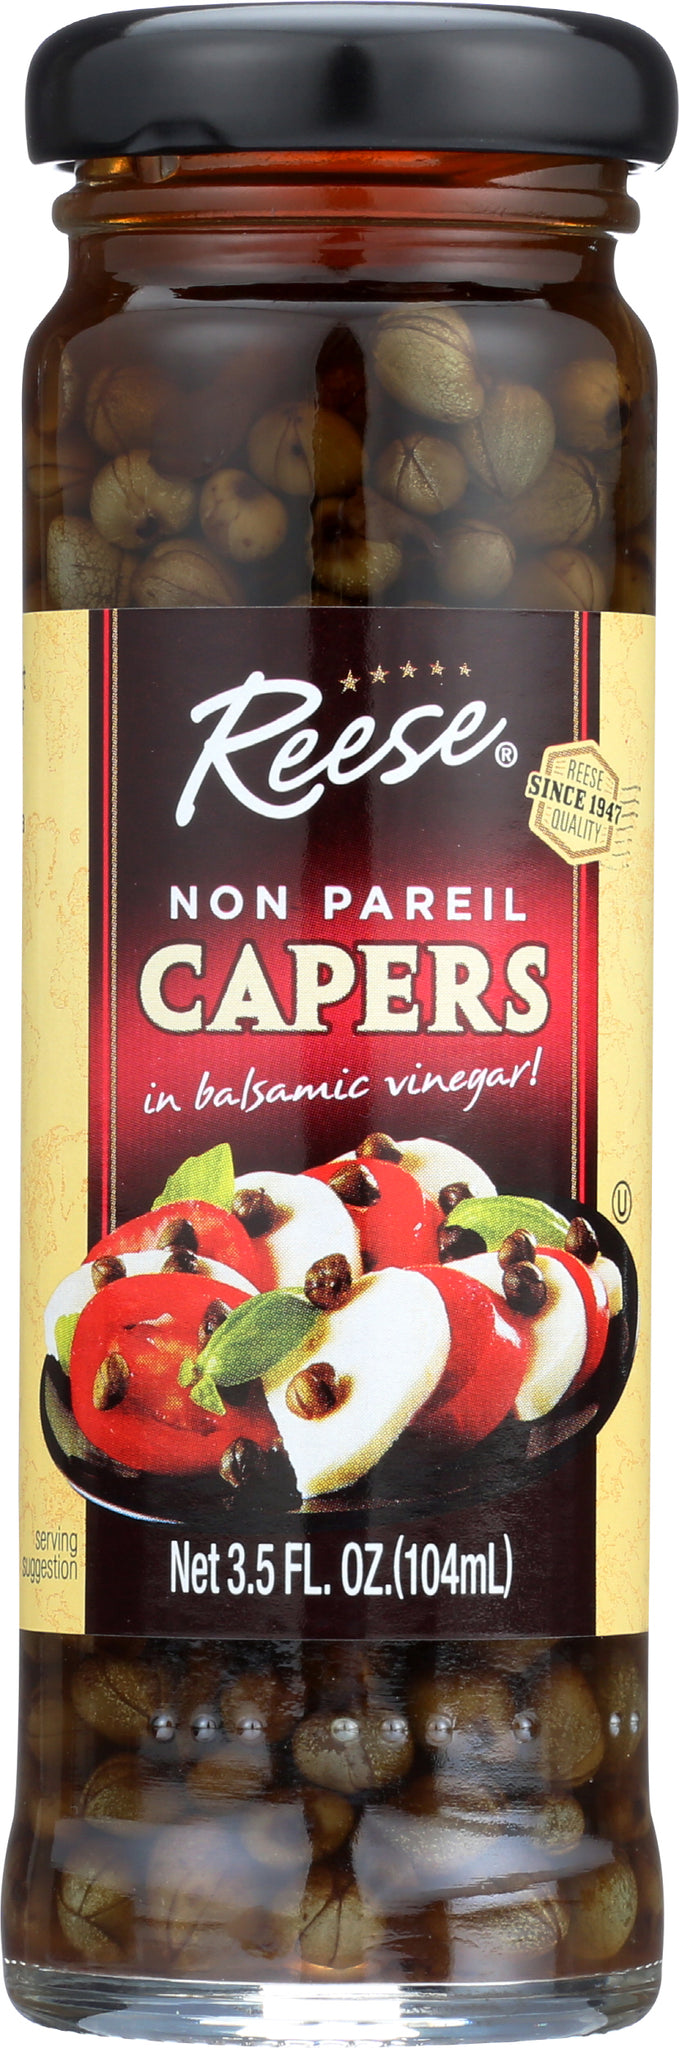 Reese Balsamic Vinegar Non Pareil Capers, 3.5 OZ (Pack of 12)